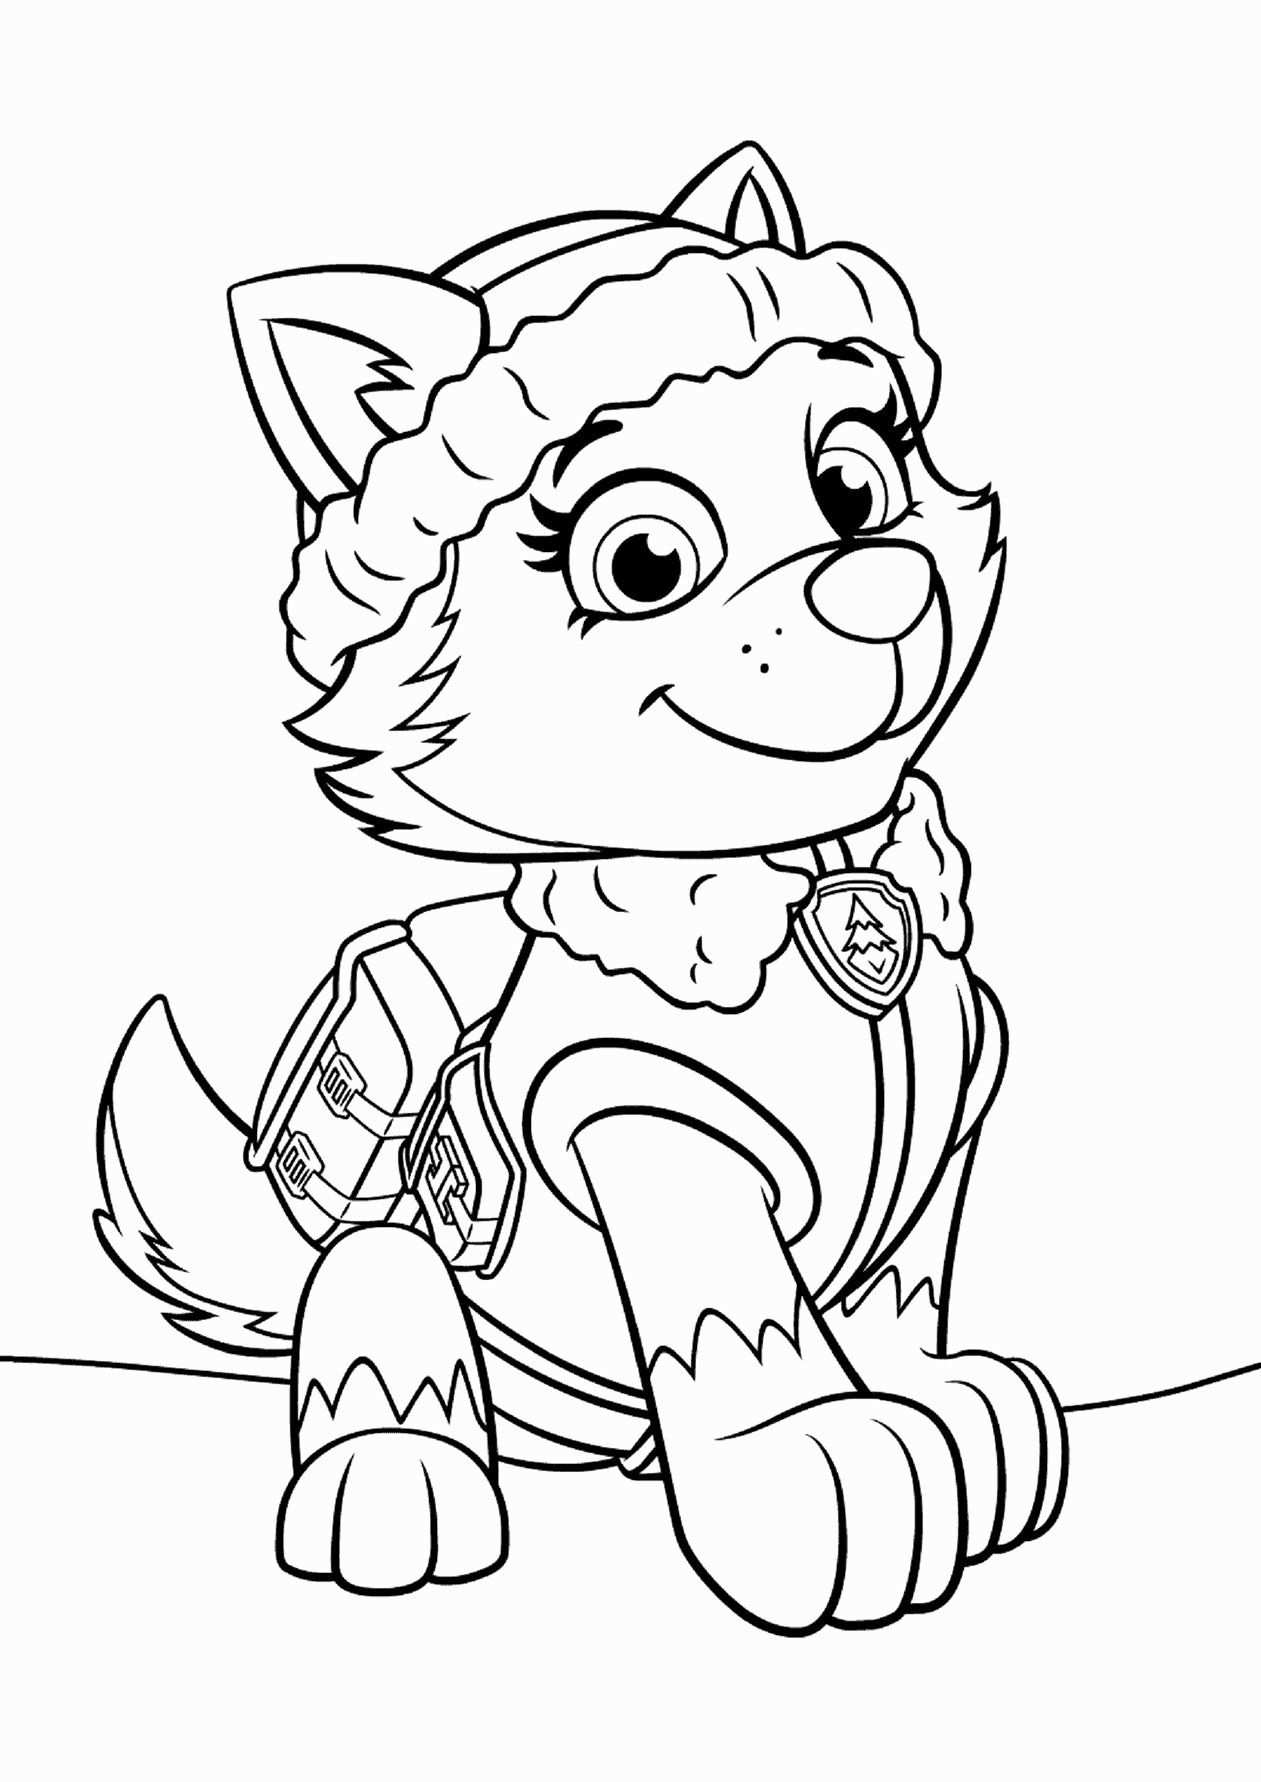 32 Paw Patrol Everest Coloring Page In 2020 With Images Paw